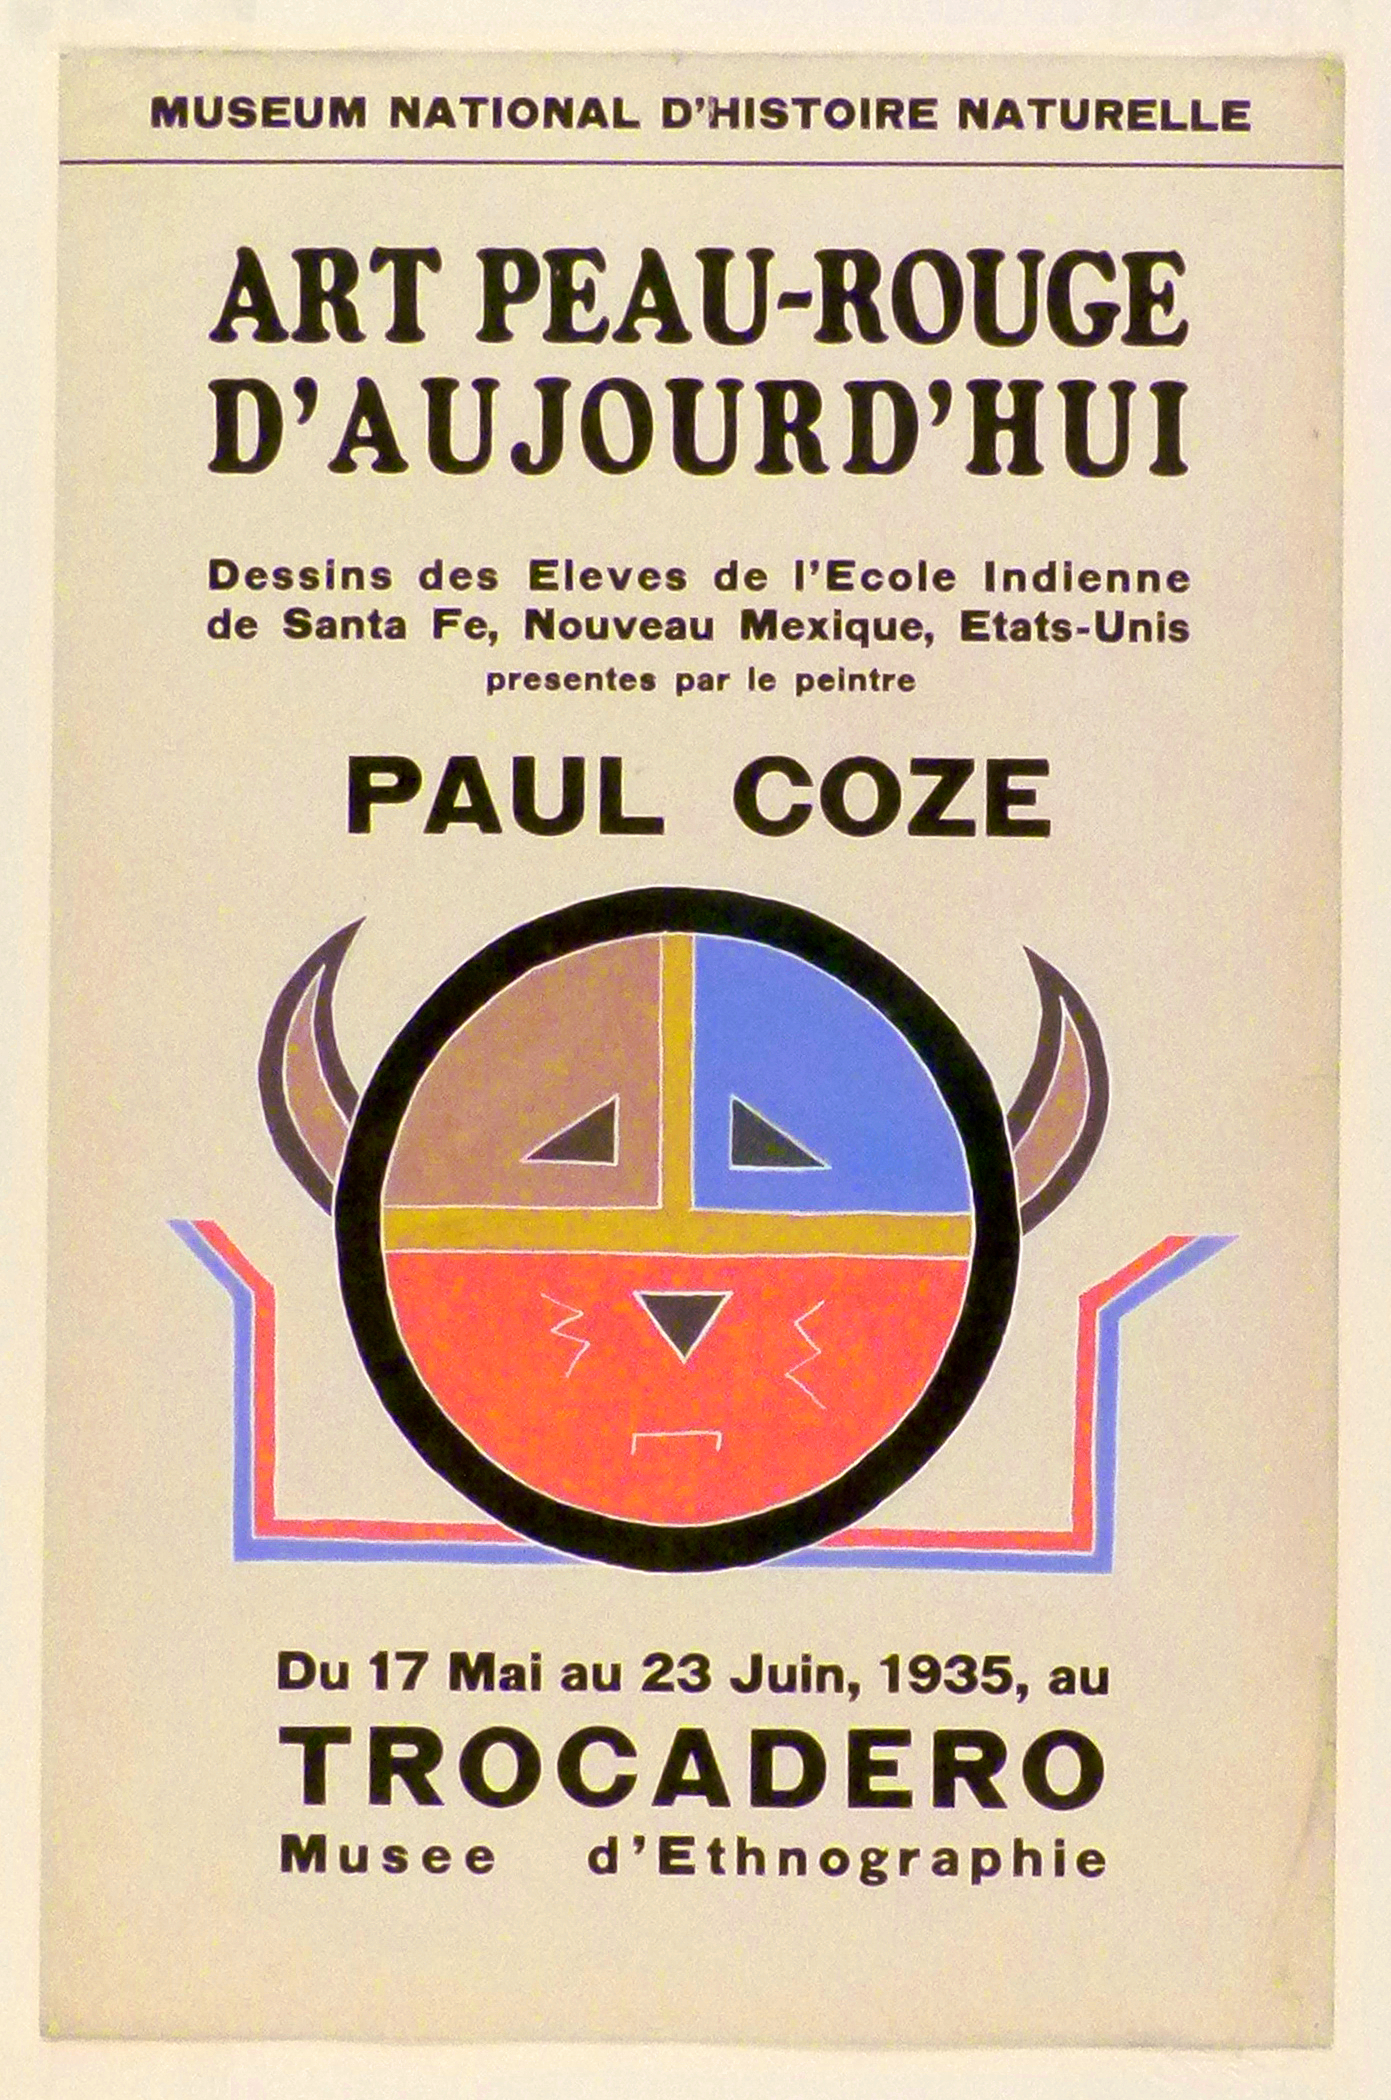 Art Exhibition Poster with painting of circle in blue, brown and orange with a schematic face and horns. Blue and orange parallel lines project from the bottom like arms.